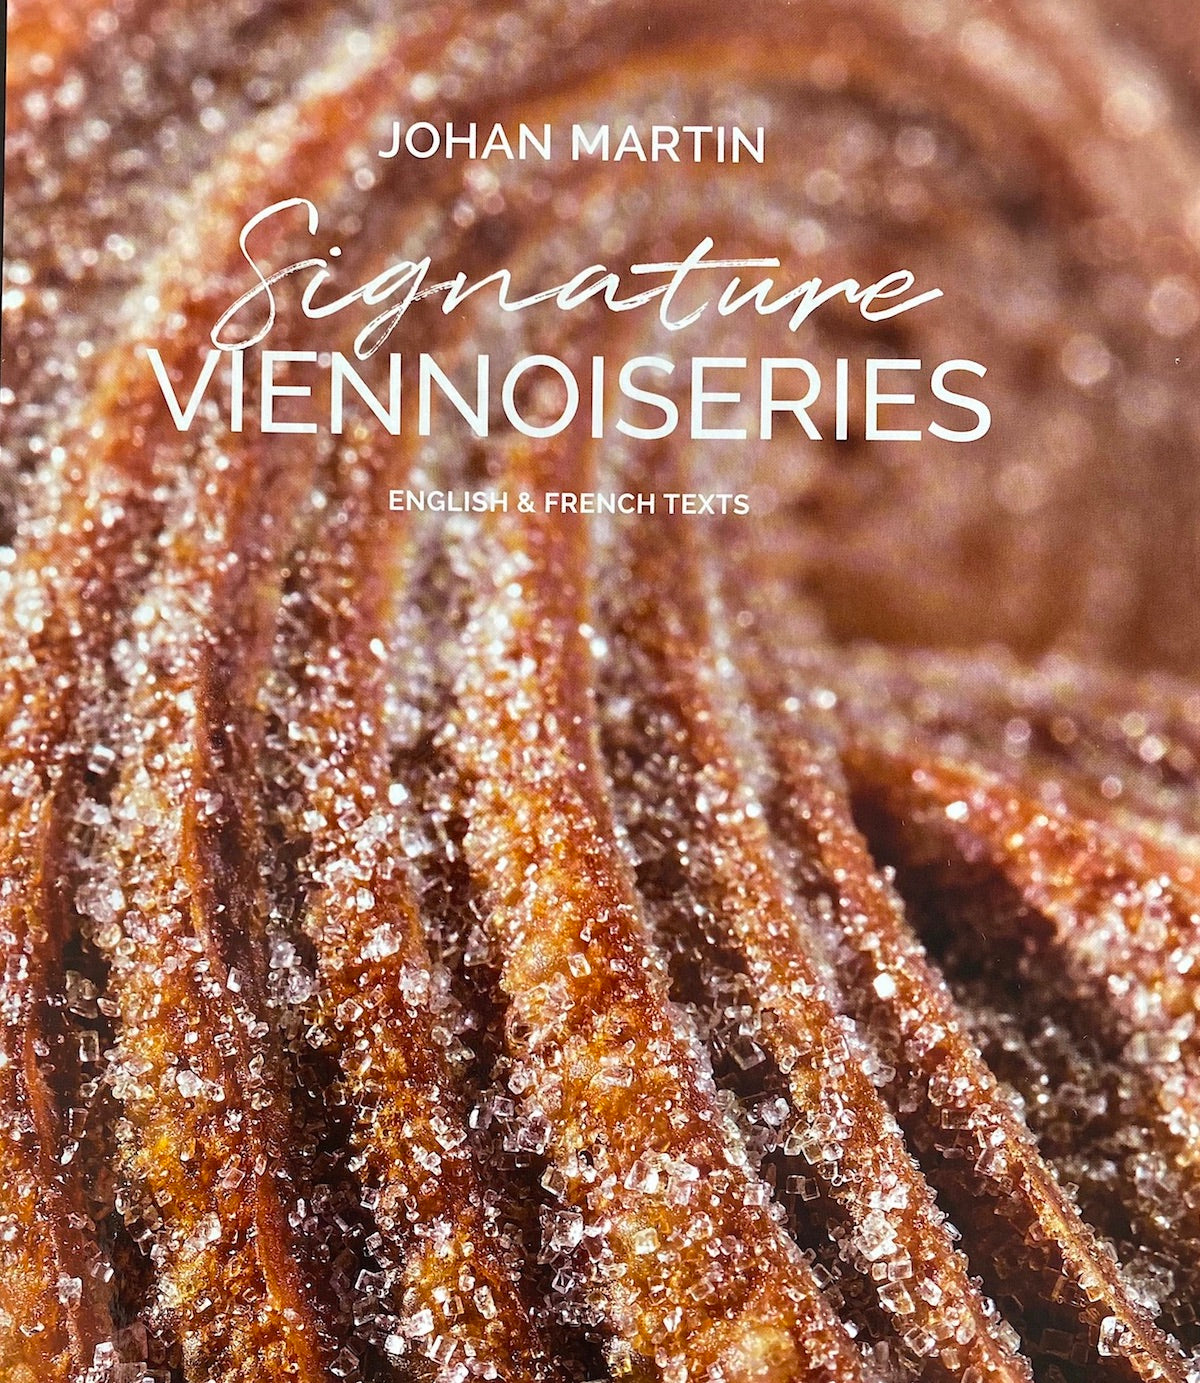 Book Signature Viennoiseries by Johan Martin